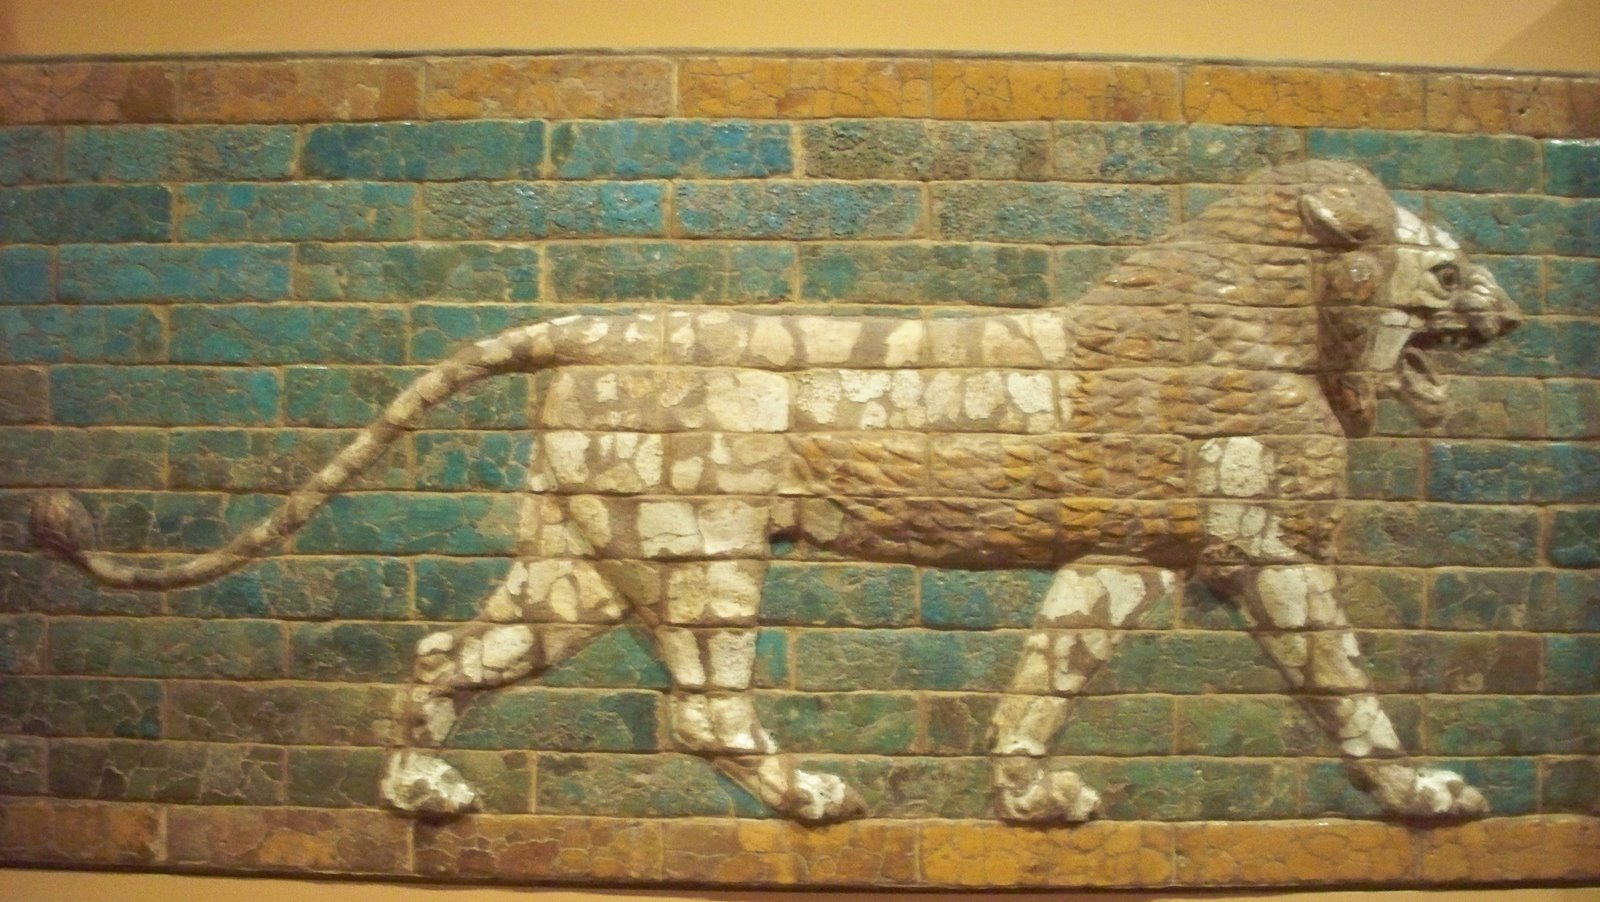 Striding Lion of Bablyon -- at The University of Chicago's Oriental Institute